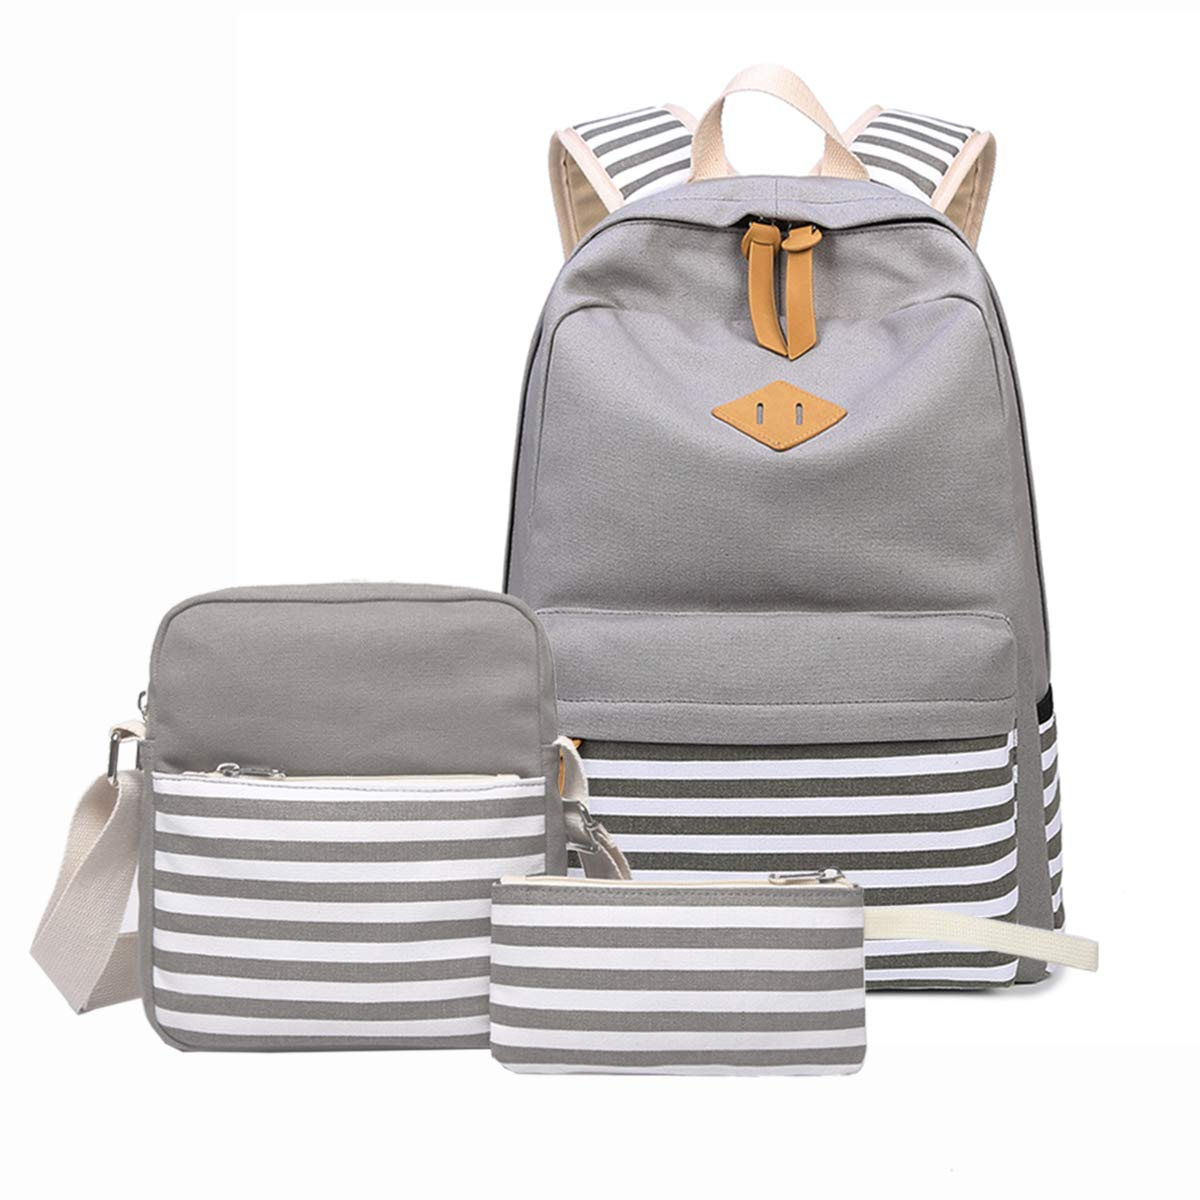 Sammid Casual Bookbags Set Boys,Fashion Lightweight 3pcs/Set Canvas Studen Backpack Fits 14 inch Laptop Smooth Zipper Shoulder Bag Pen Case Teen Girls Boys - Gray